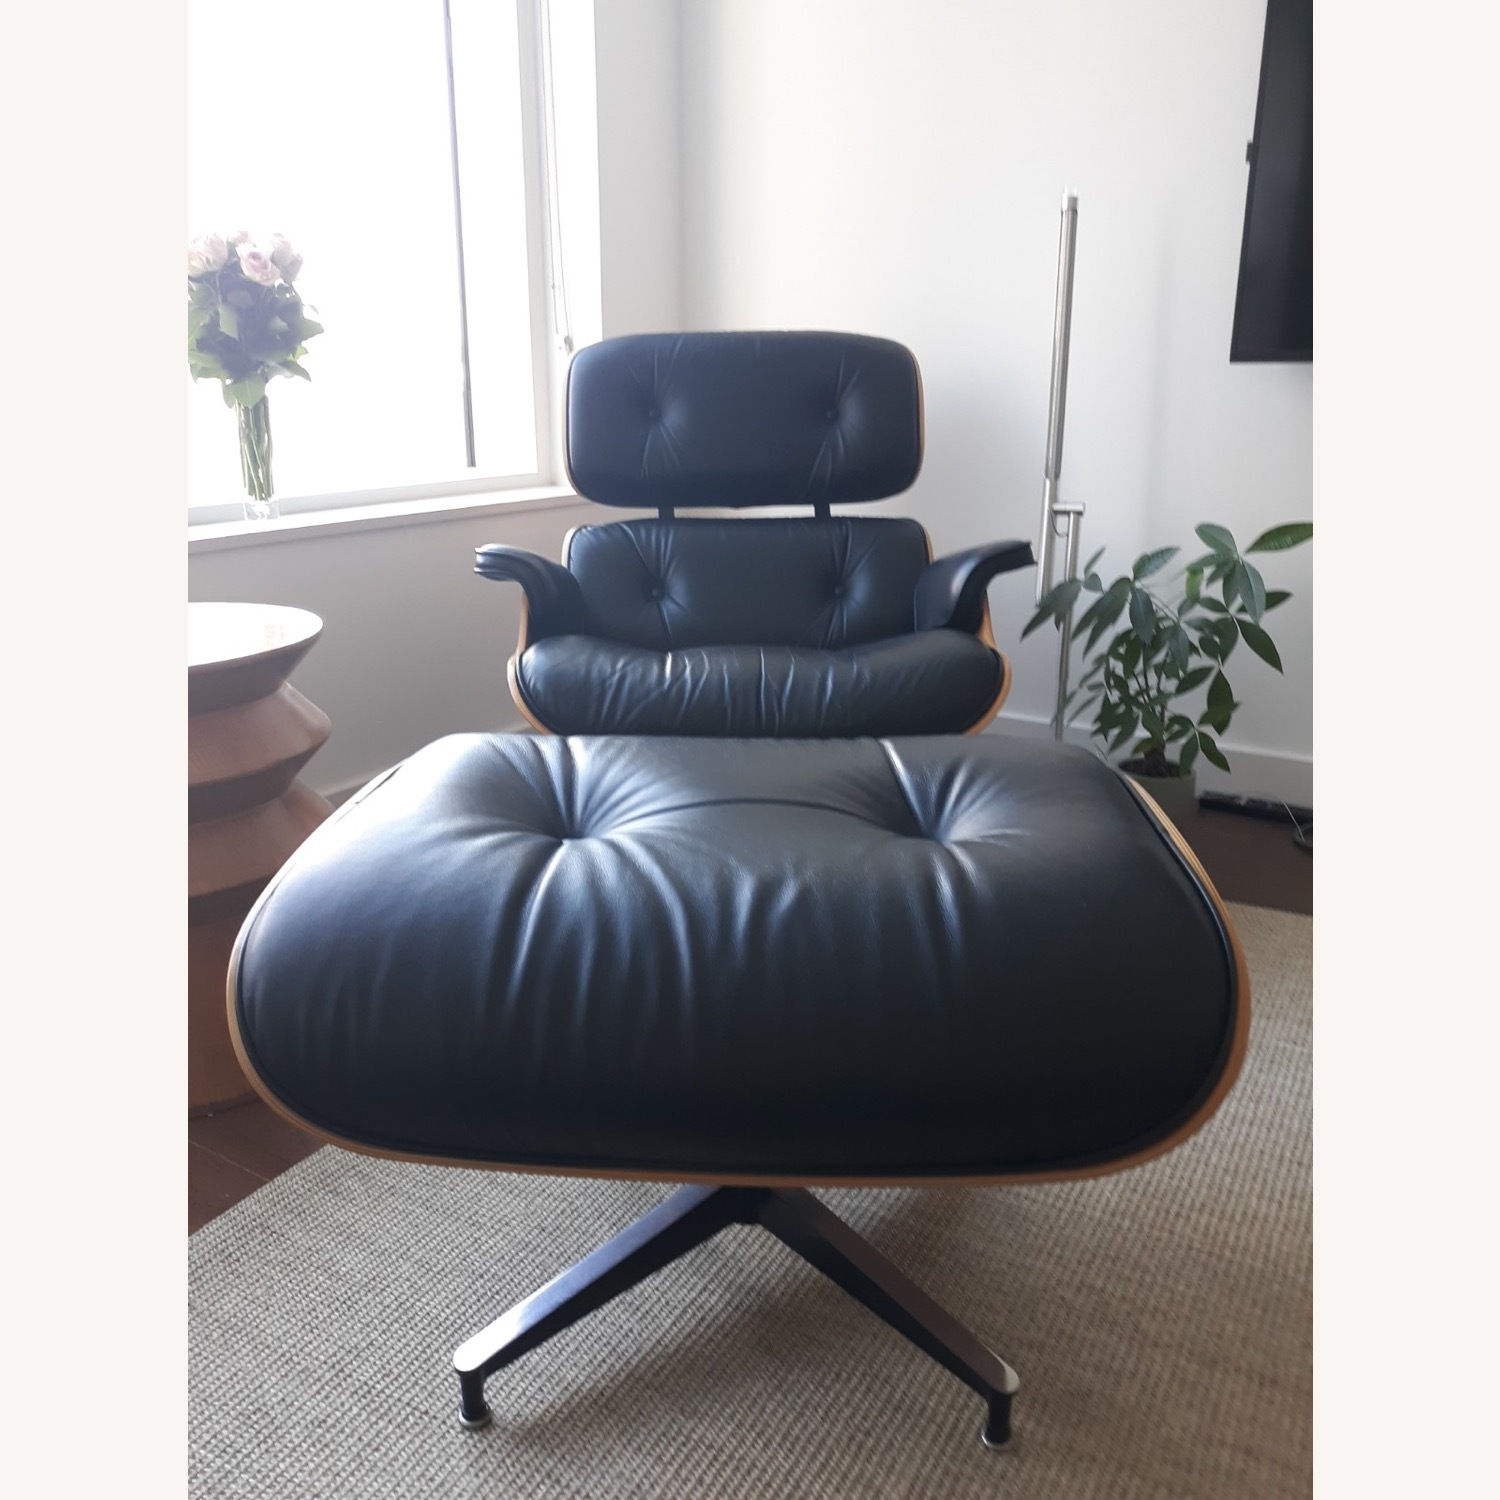 Herman Miller Eames Lounge Chair and Ottoman - image-17